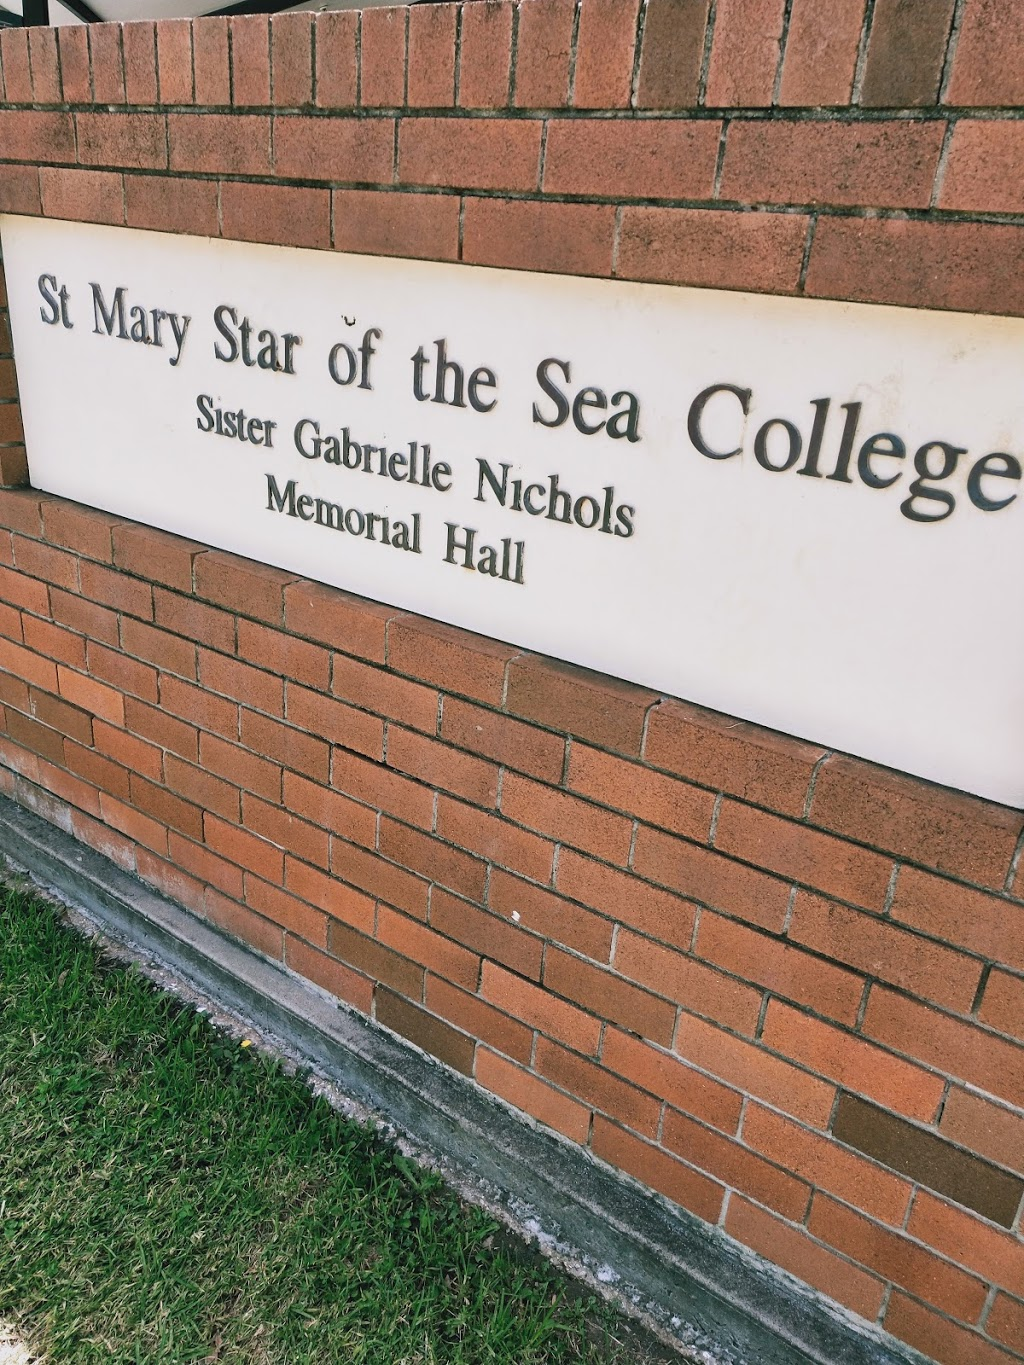 St Mary Star of the Sea College | school | 15 Harbour Street Locked Bag 42, Wollongong NSW 2500, Australia | 0242286011 OR +61 2 4228 6011